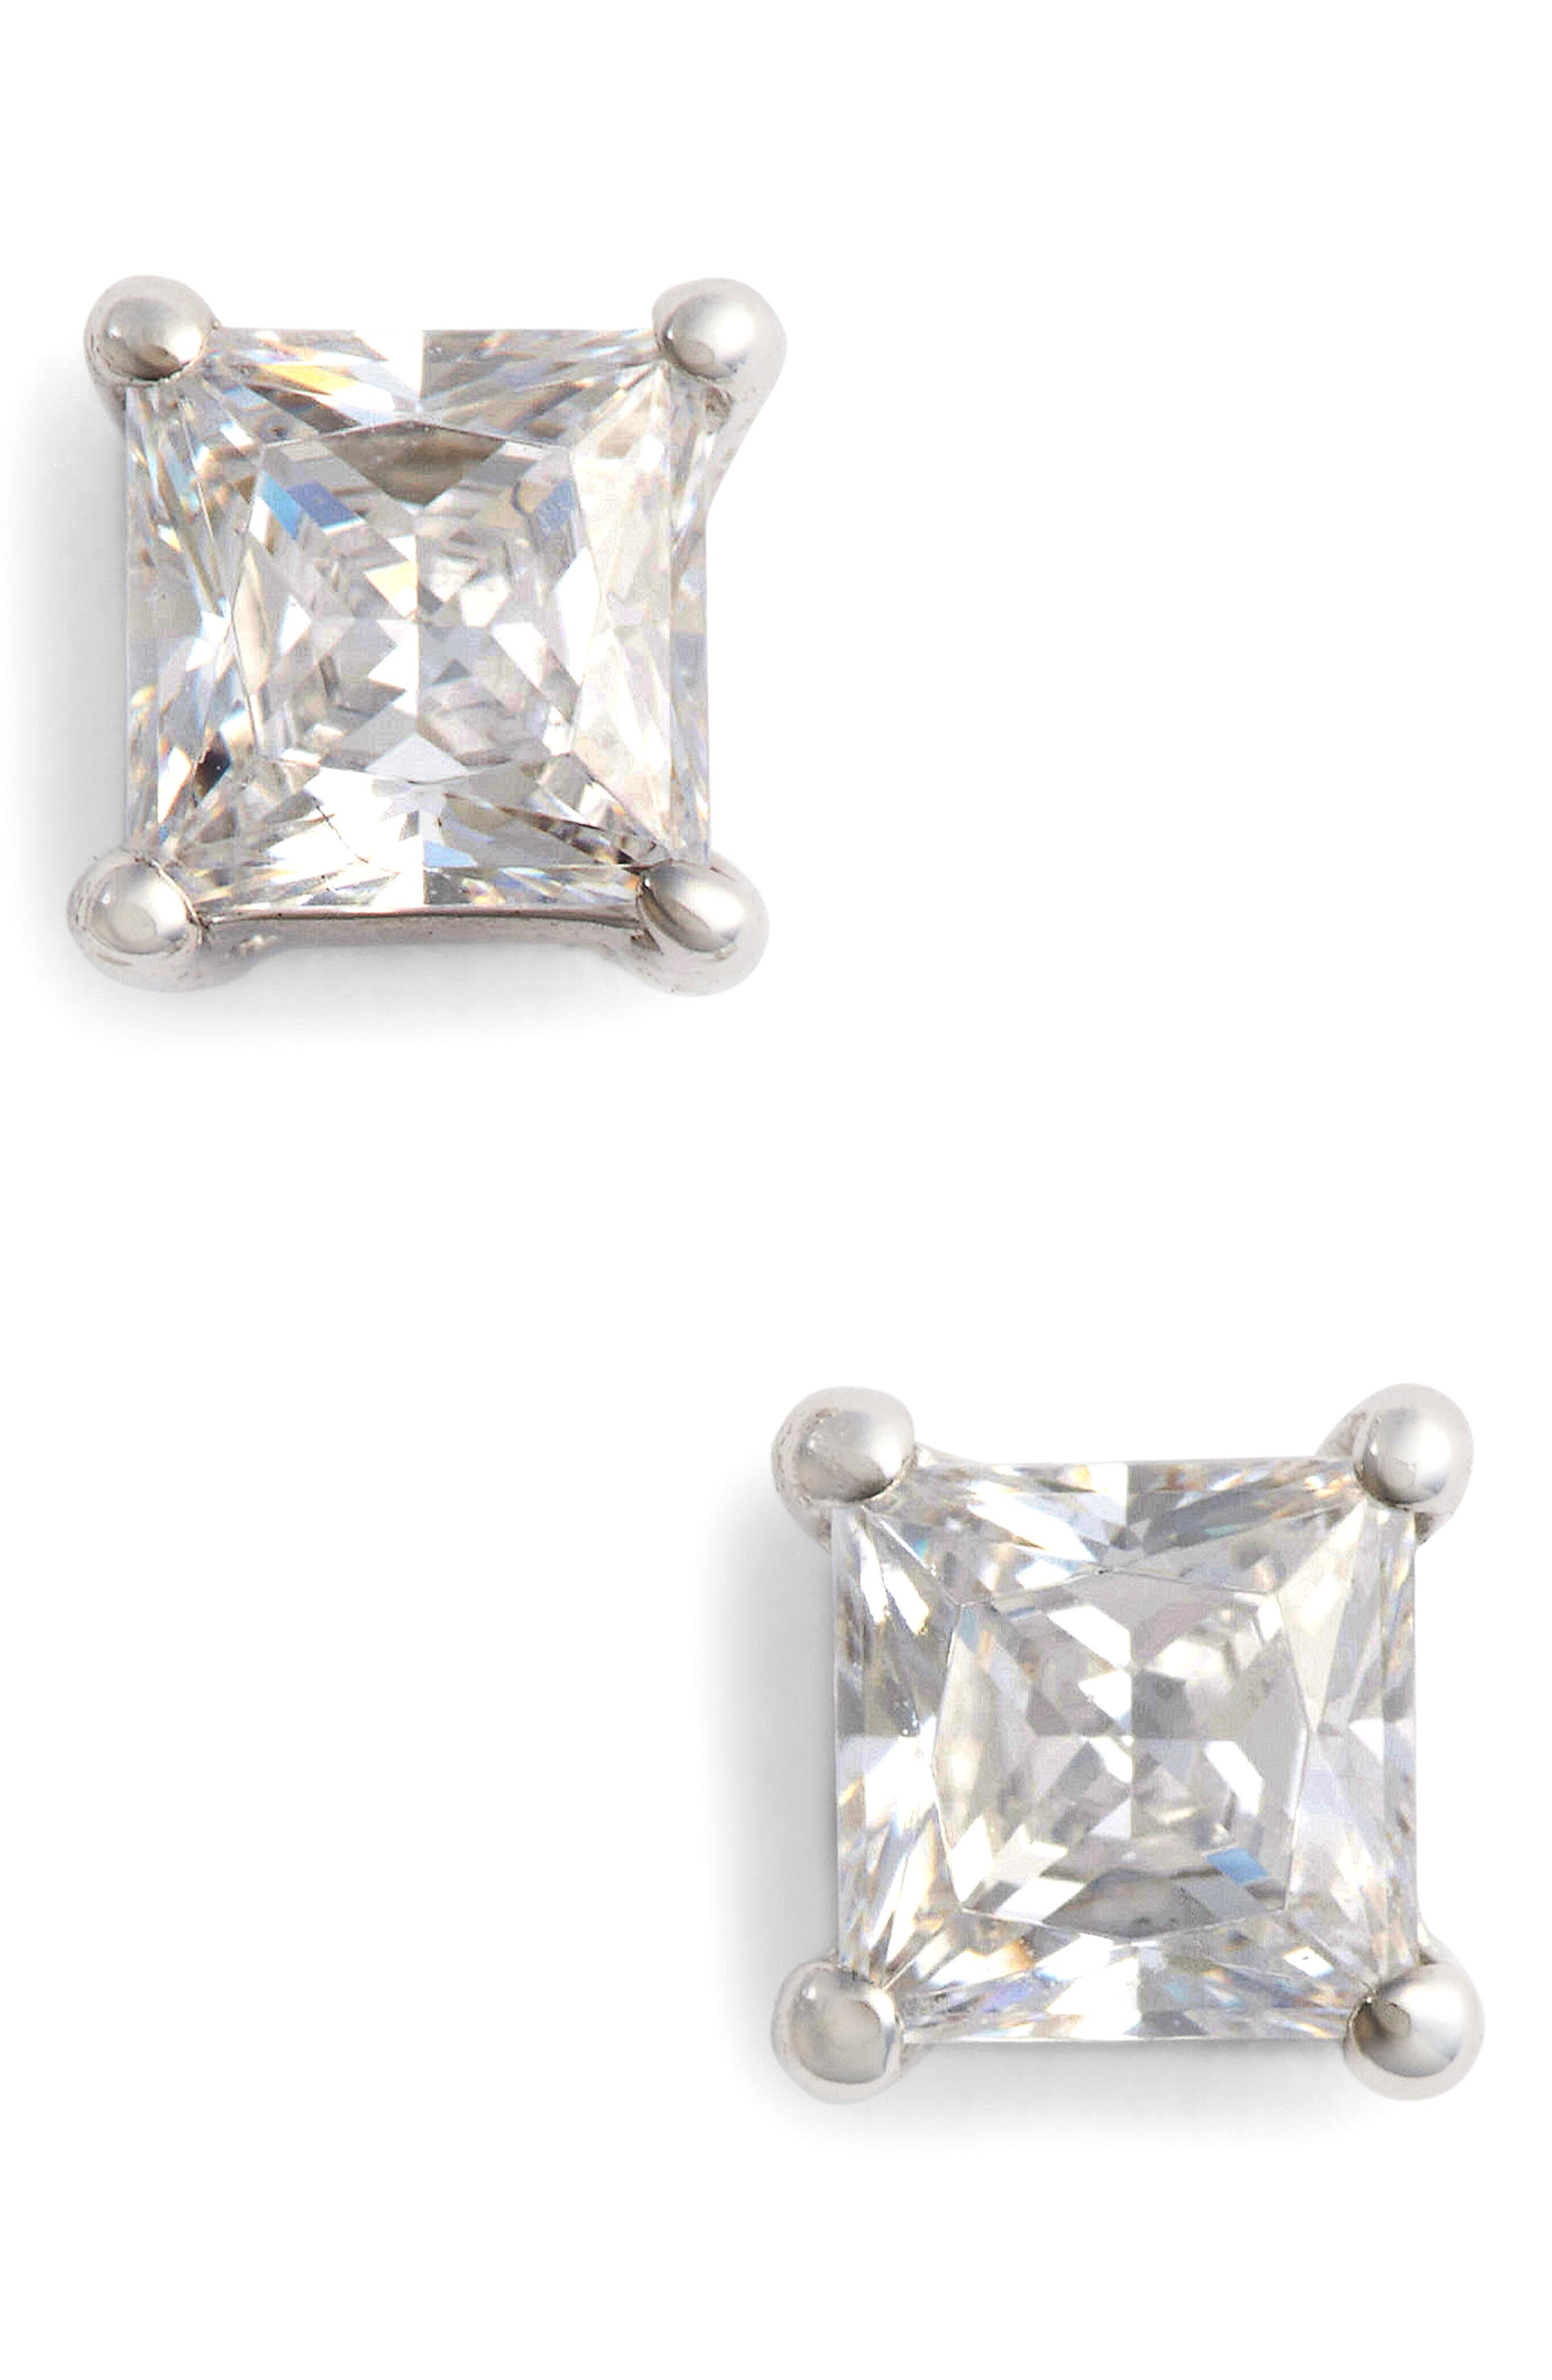 Main Image - Lafonn Simulated Diamond Stud Earrings